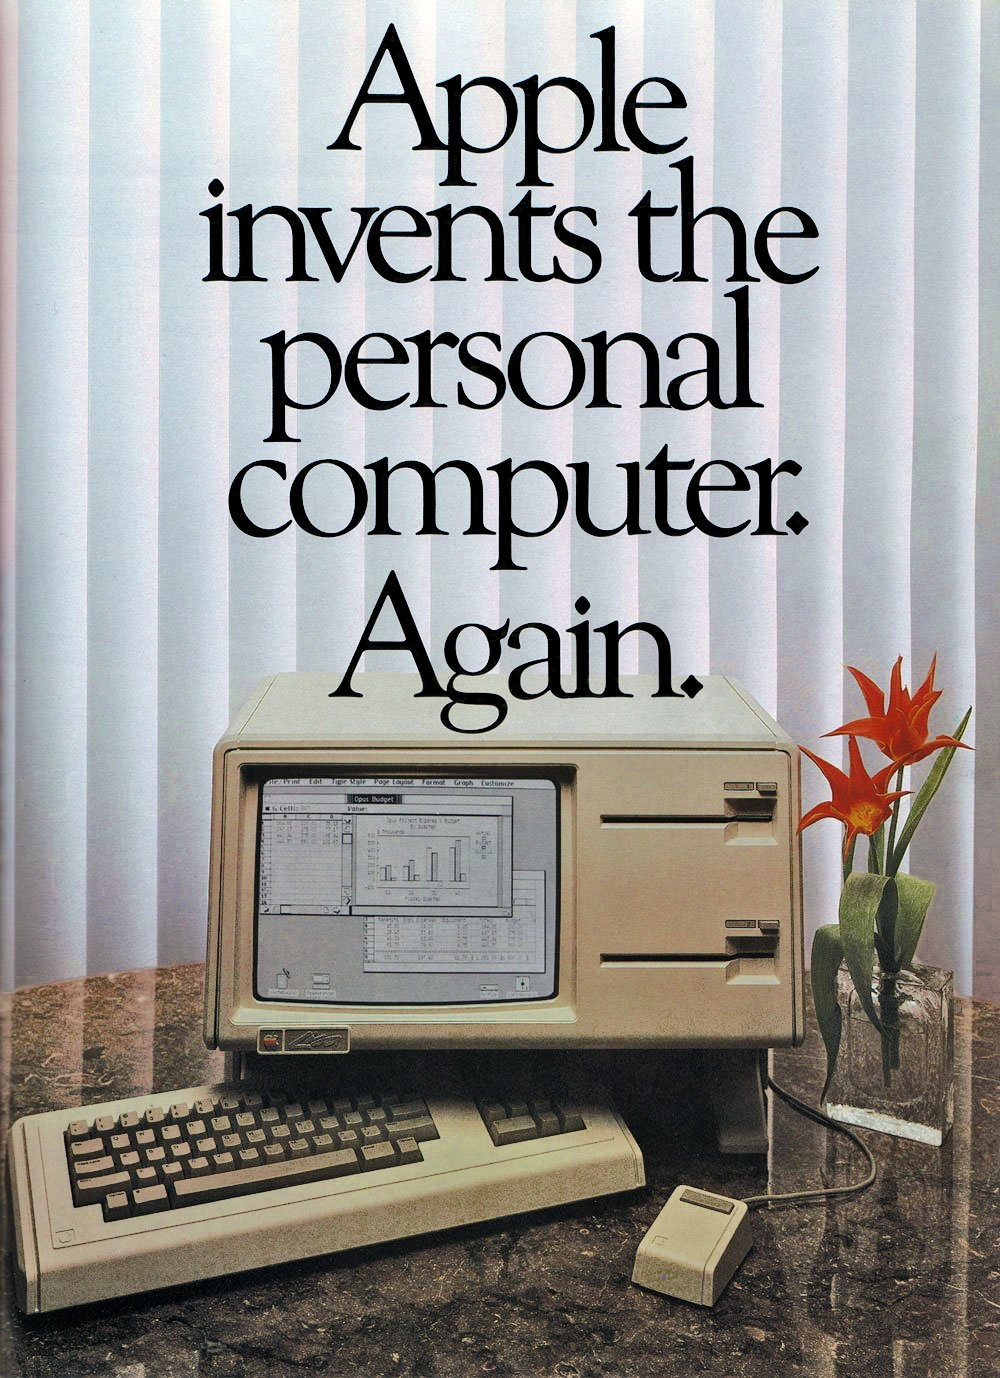 Apple 1983 ad for the Lisa